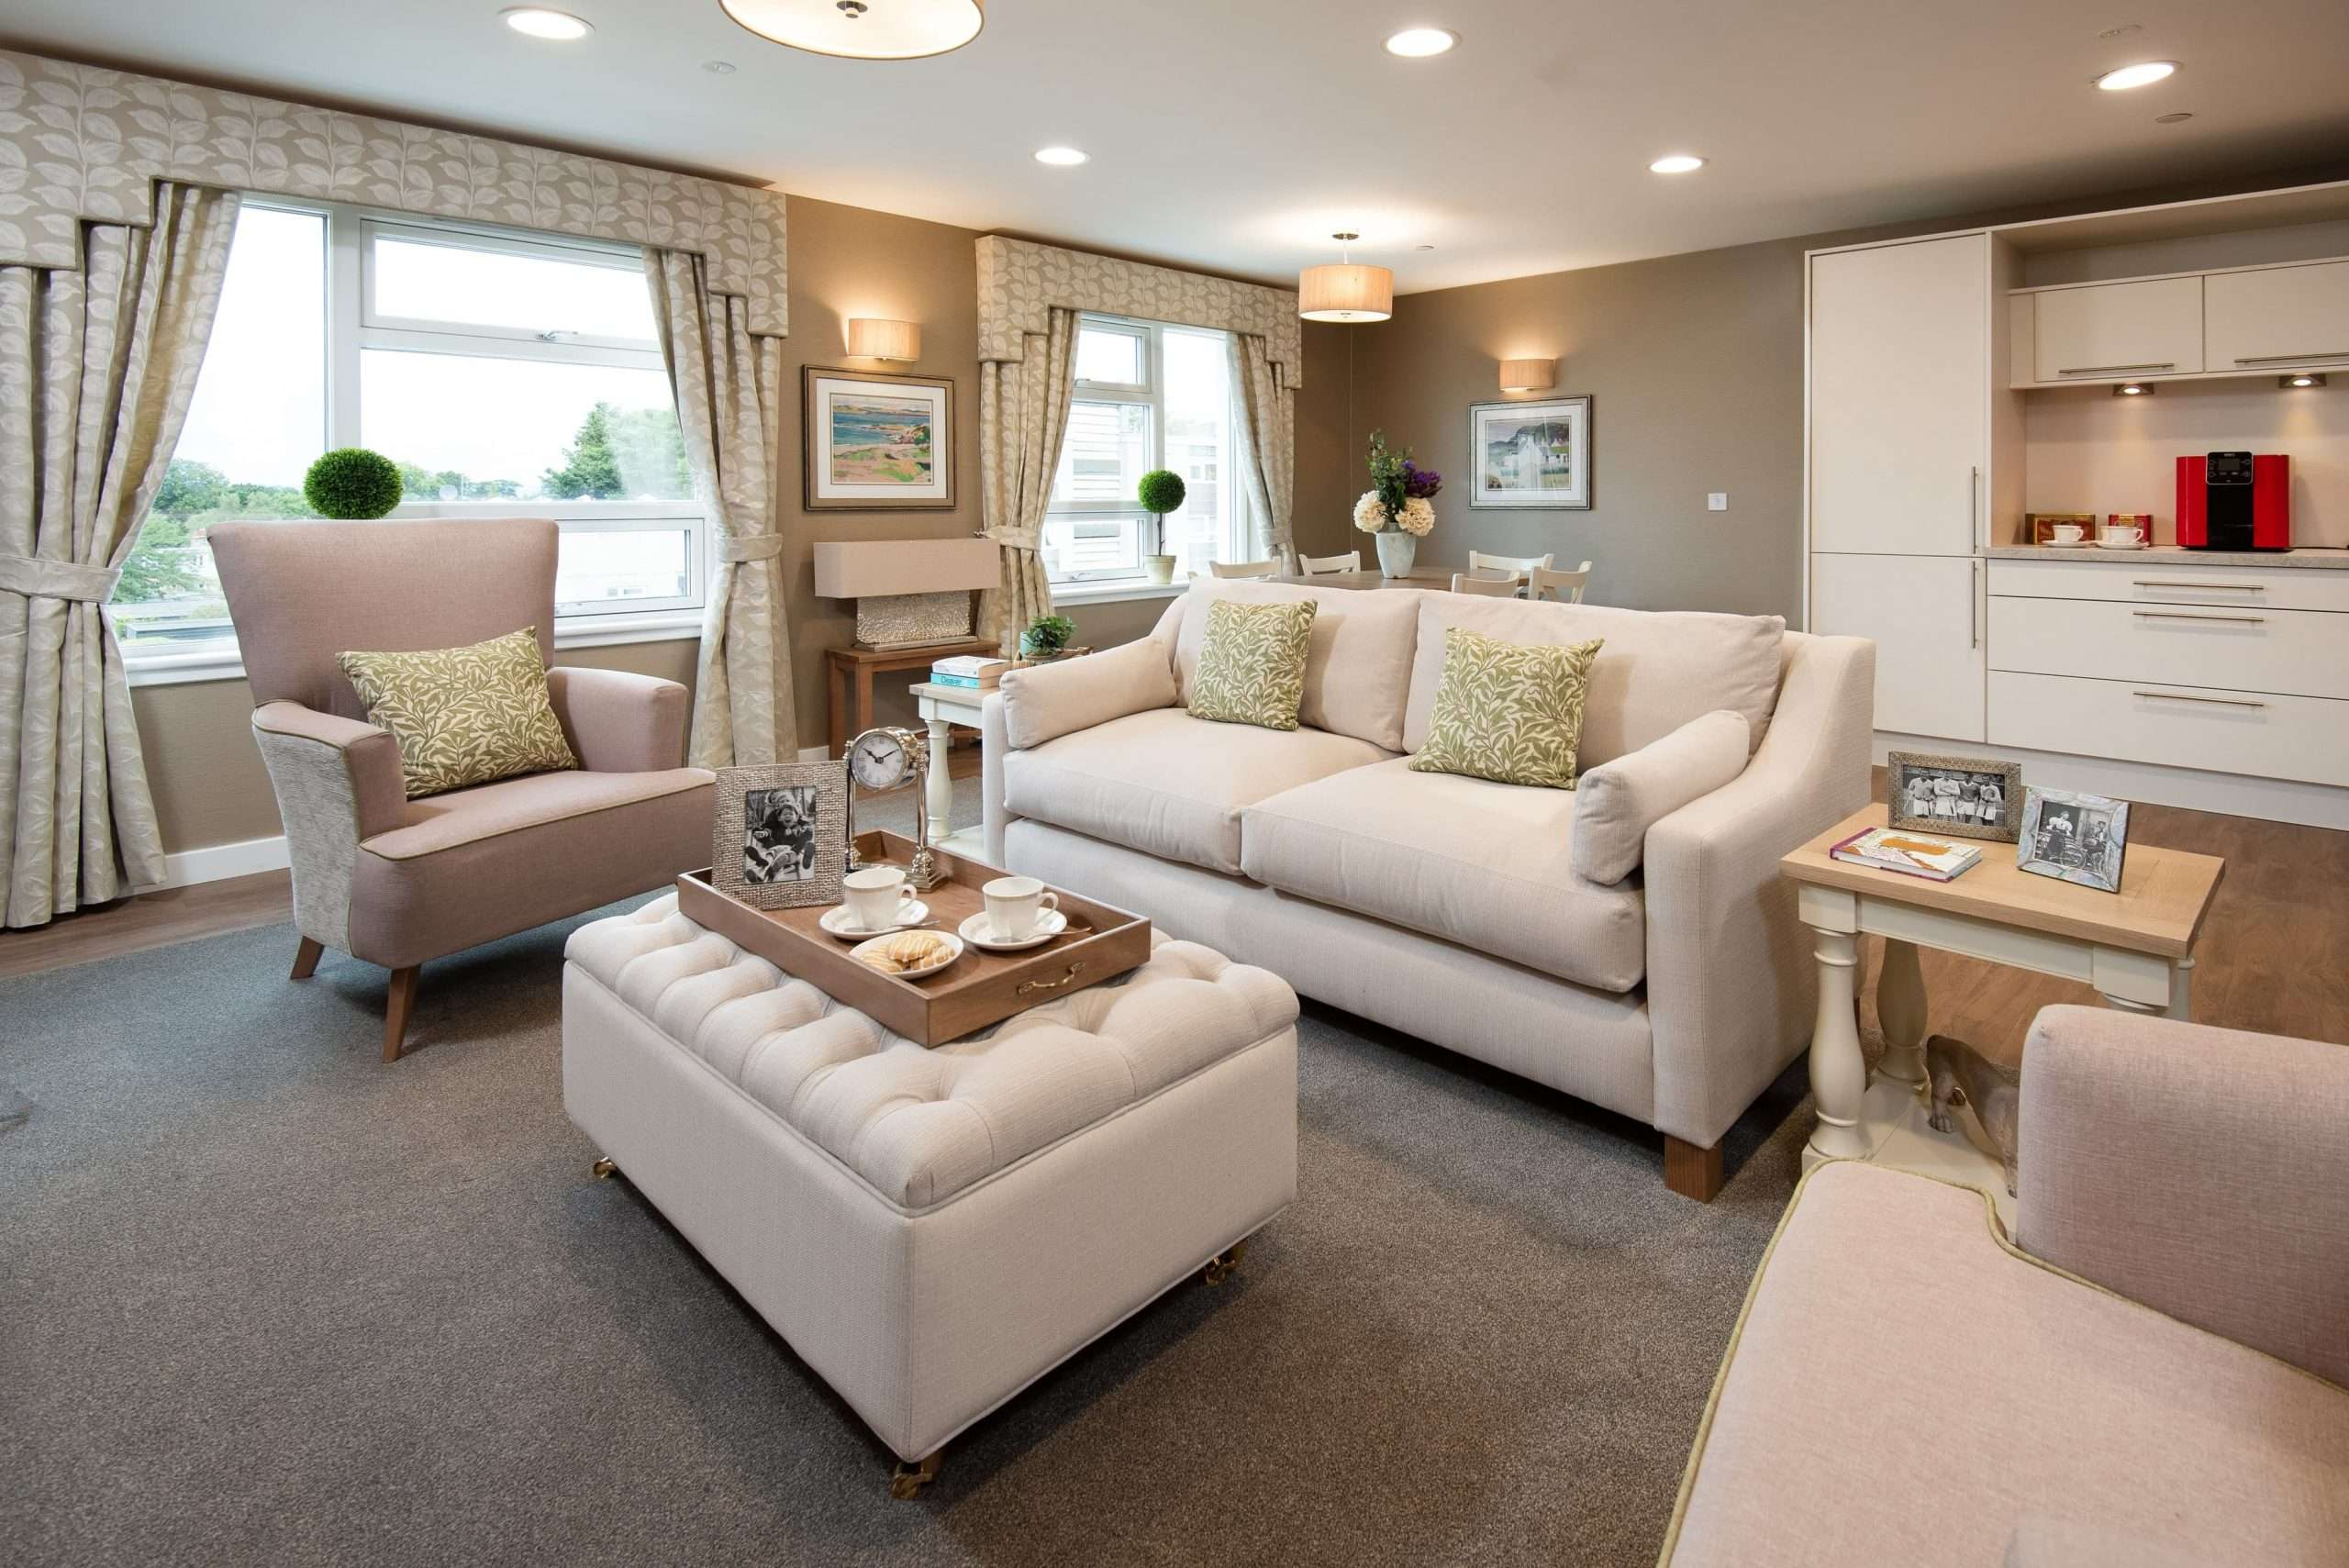 Lounge area at Edinburgh care home